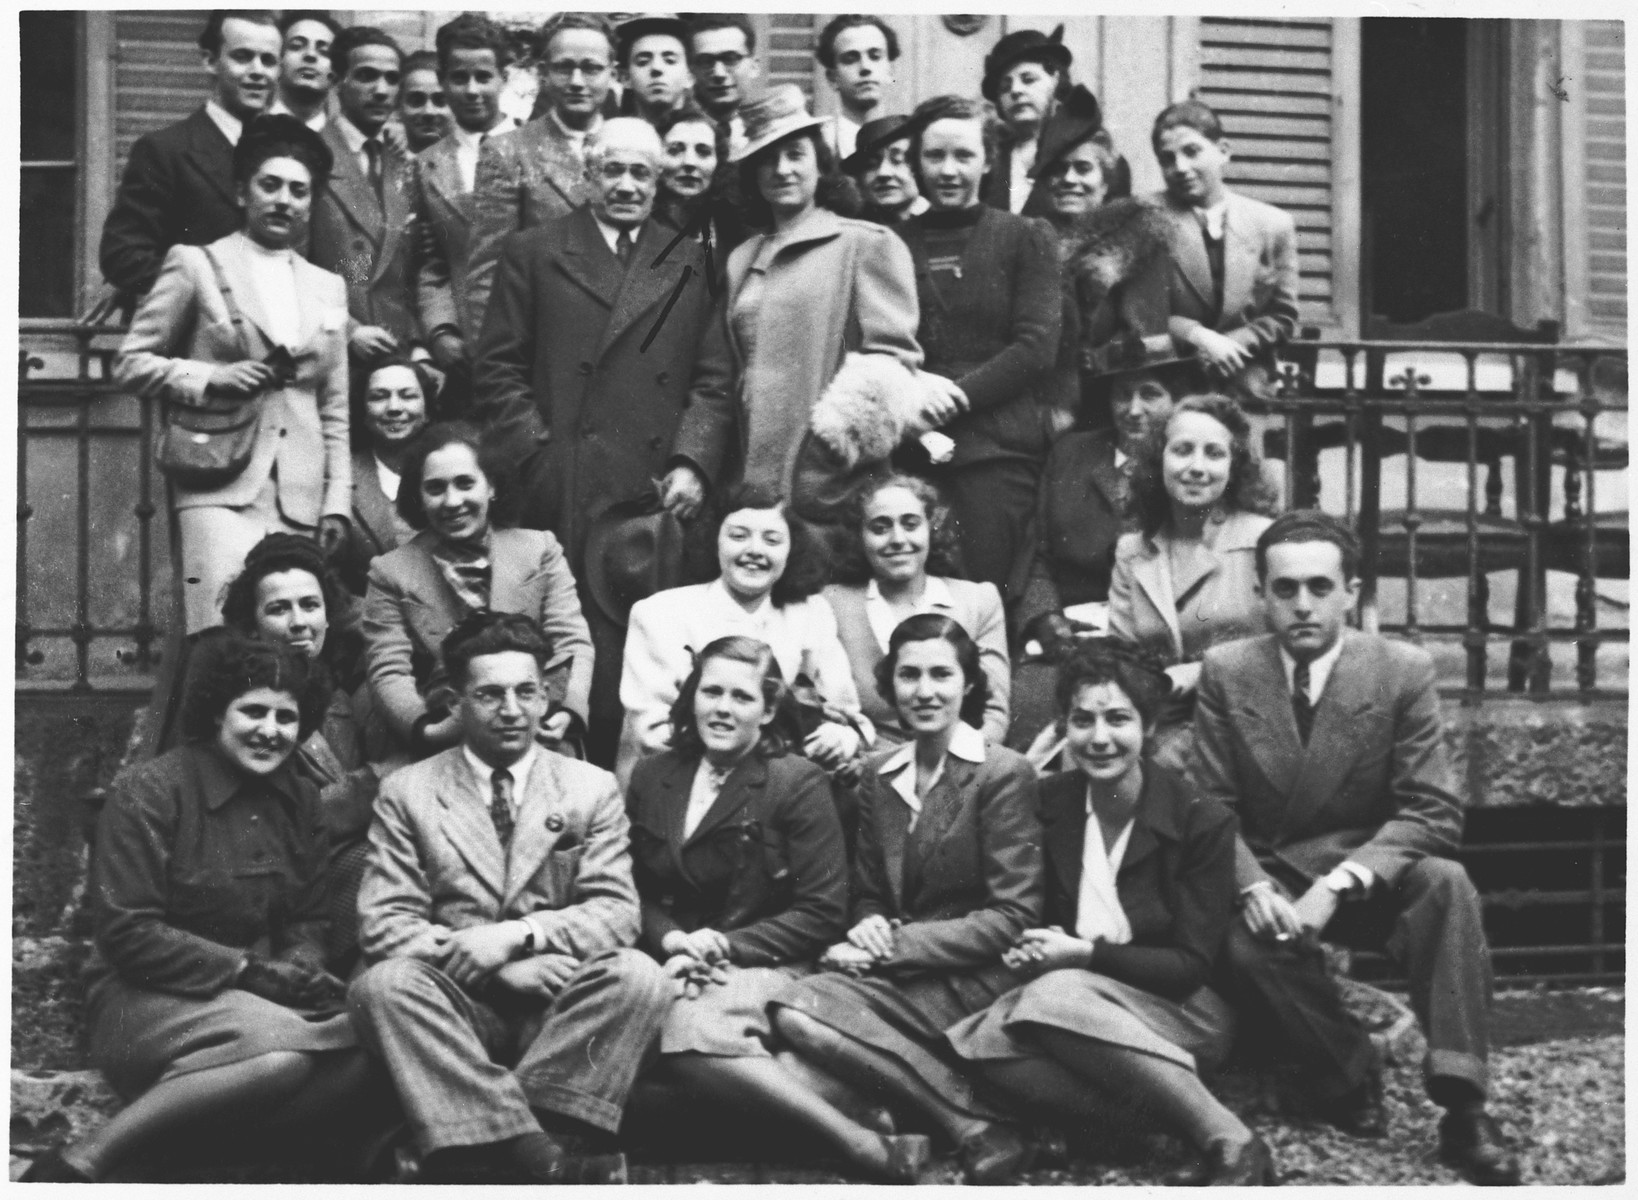 Members of the Jewish choir of Milan directed by the former Jewish conductor of La Scala.  Among those pictured is Paola Sereni Foa and several of her relatives.